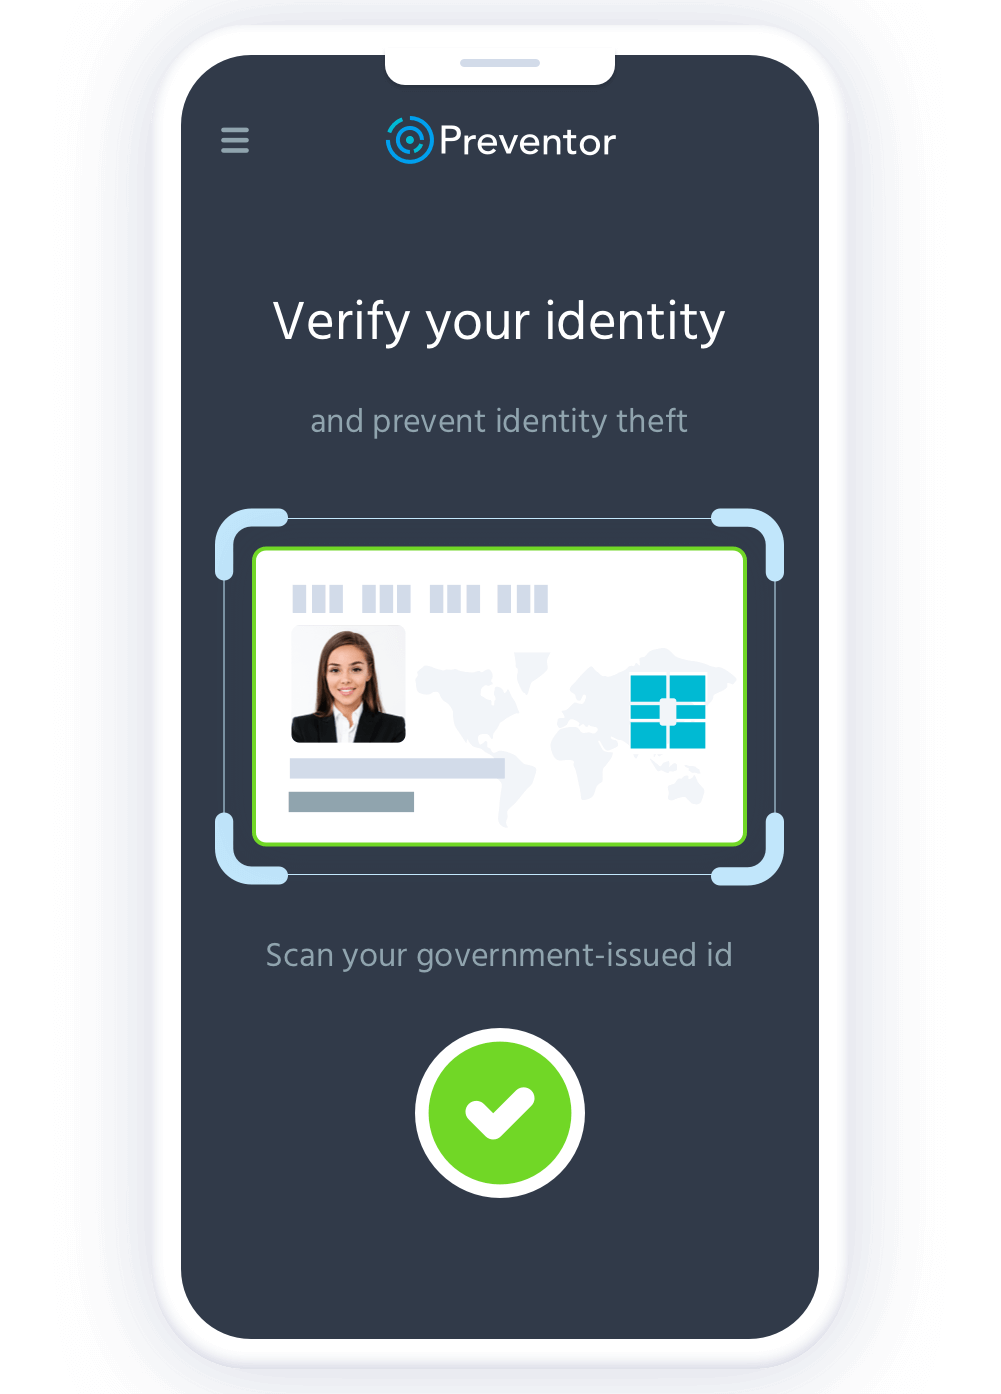 Preventor authenticate the identity verification.